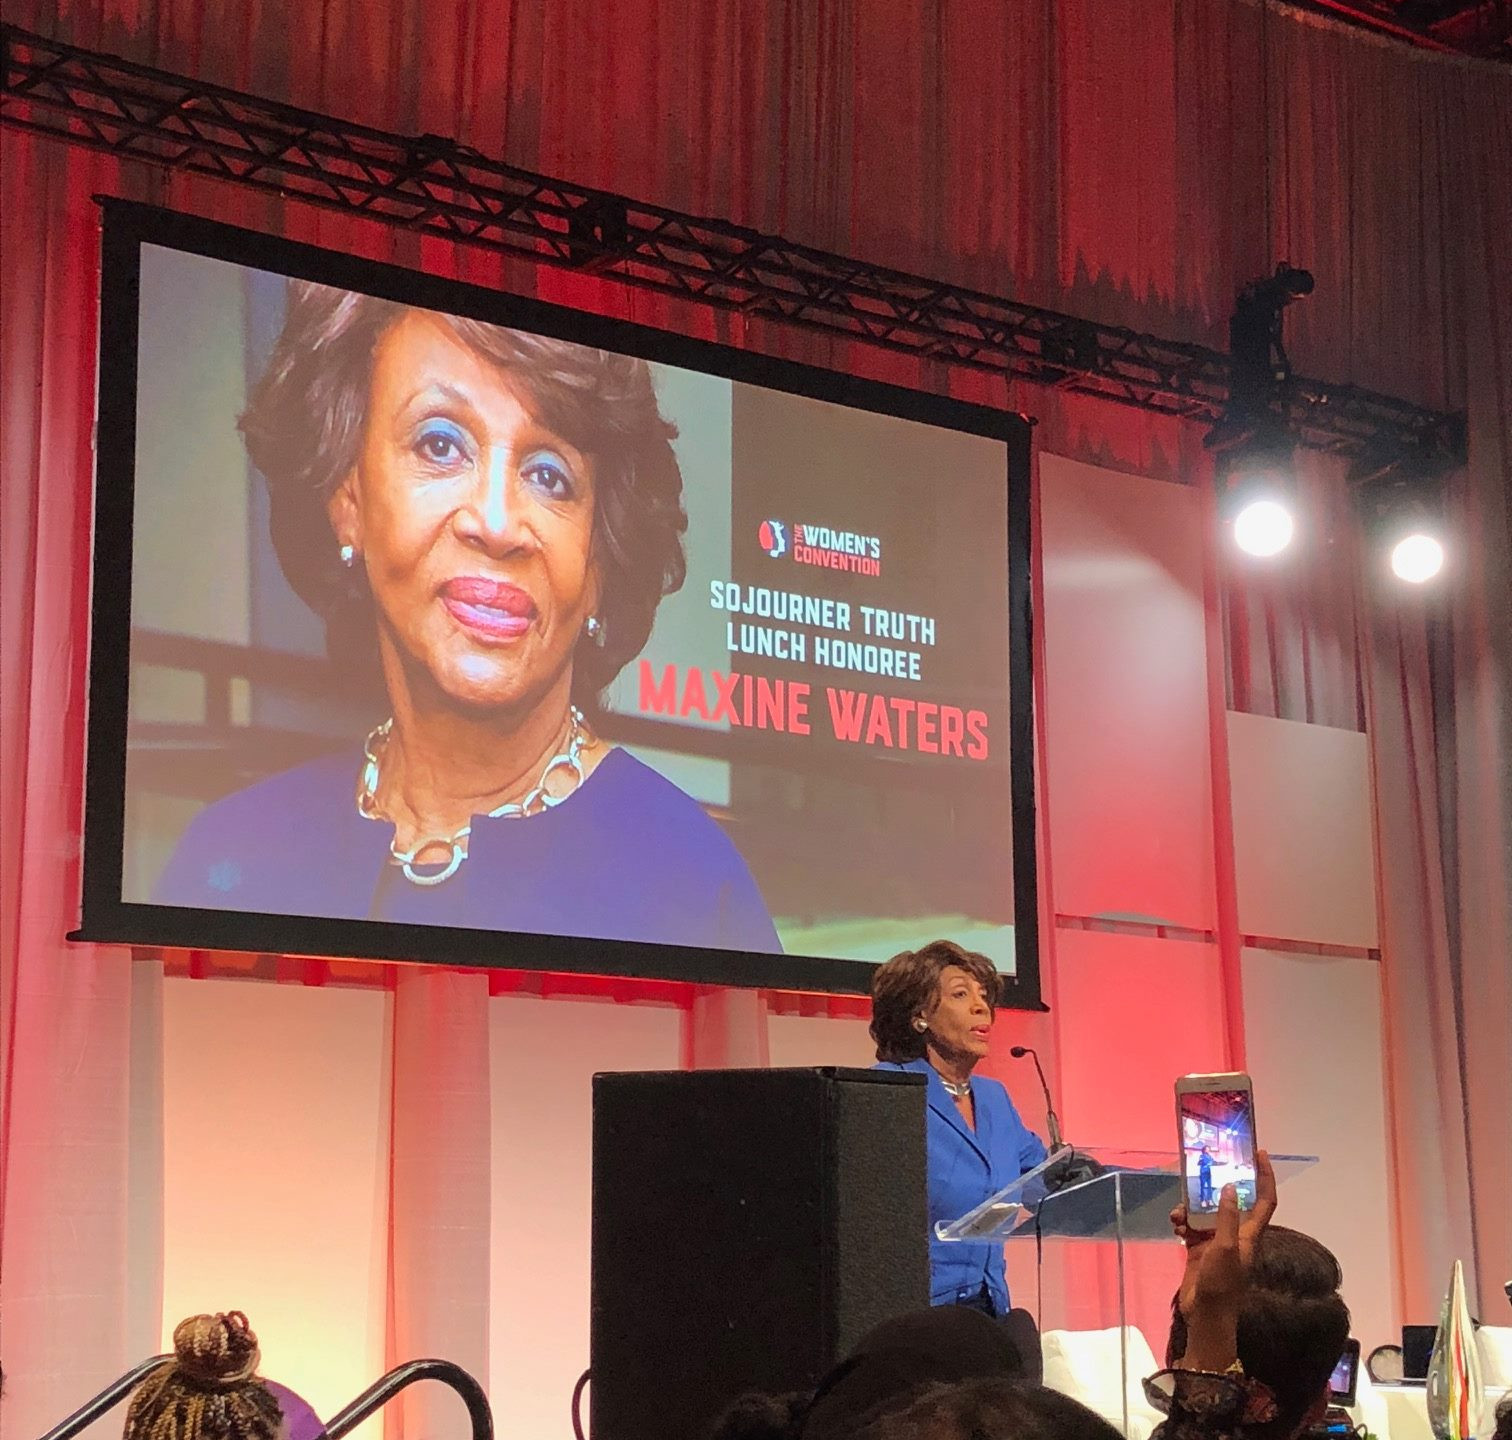 Congresswoman Maxine Waters headlined the Women's Convention and did not disappoint with her fiery speech.